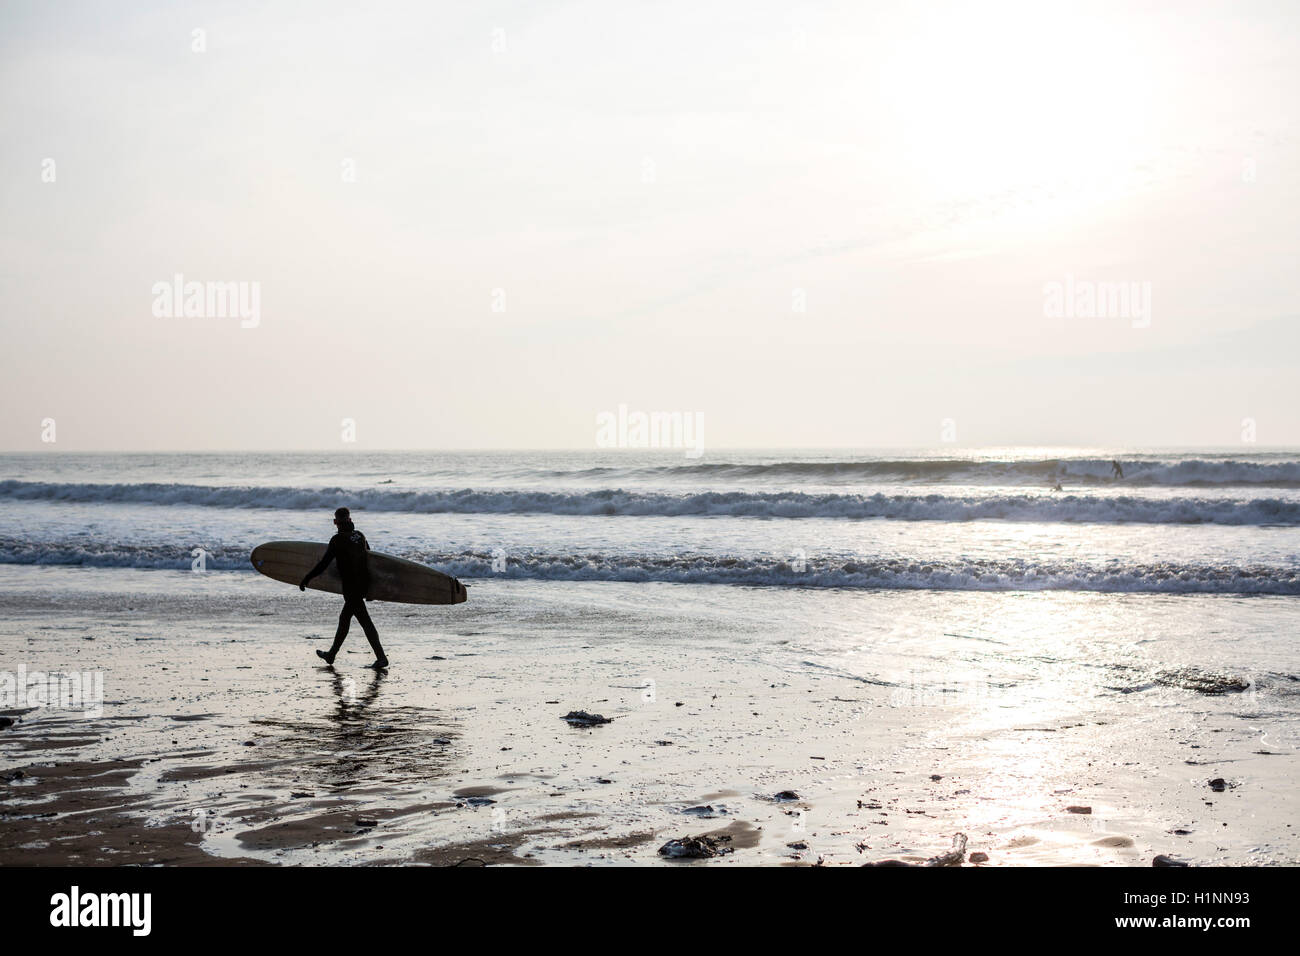 Surfer carrying a surfboard silhouetted against the sea ans sky walking on a UK beach - Stock Image